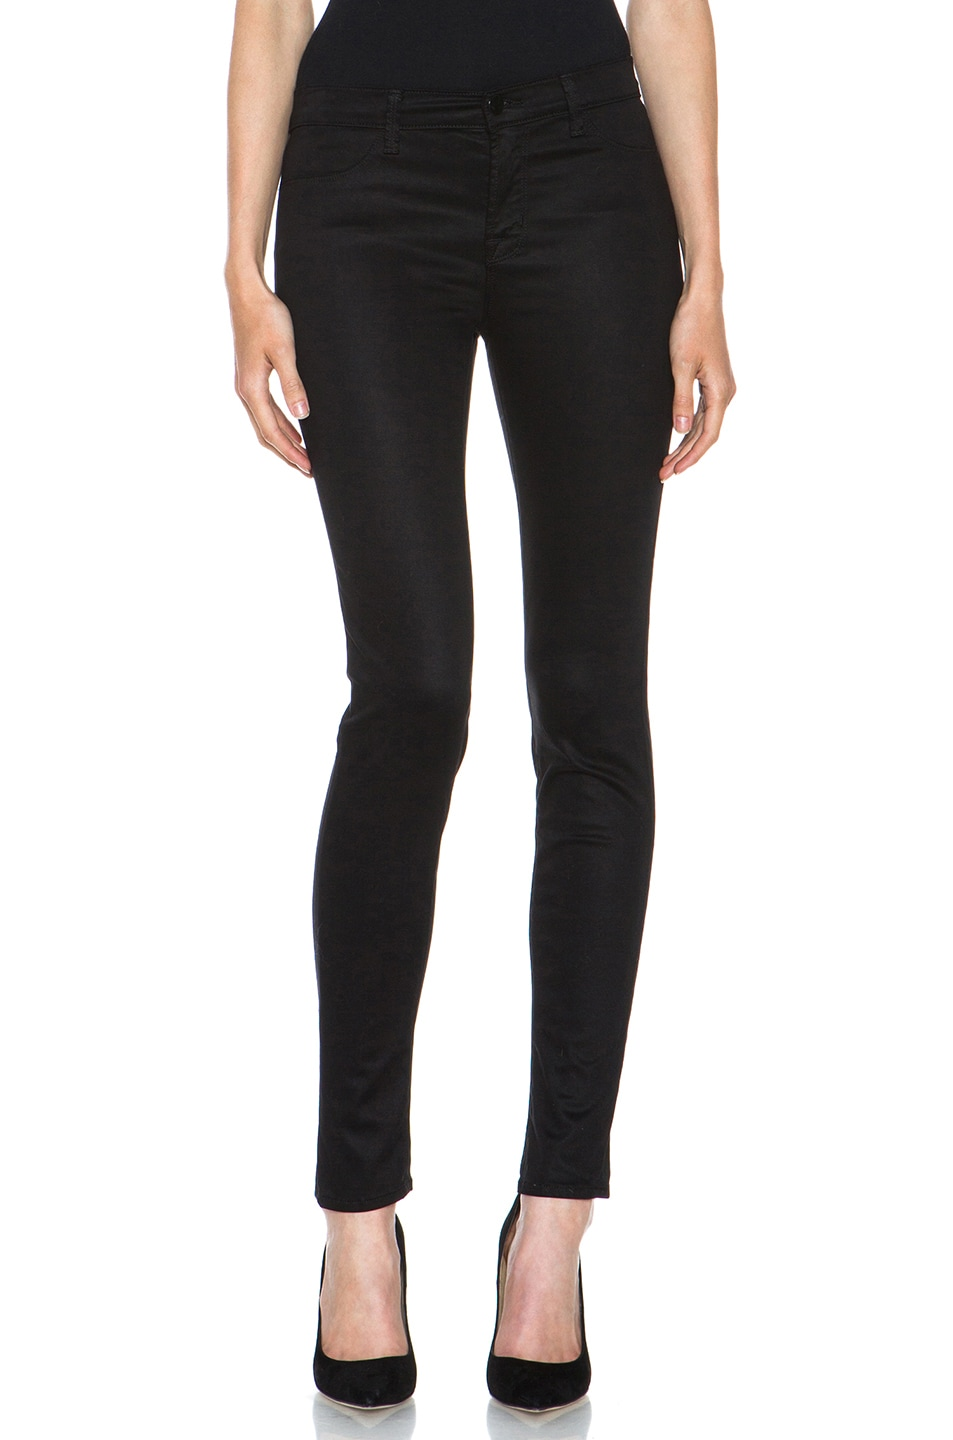 Image 1 of J Brand Mid Rise Skinny in Black High Shine Sateen